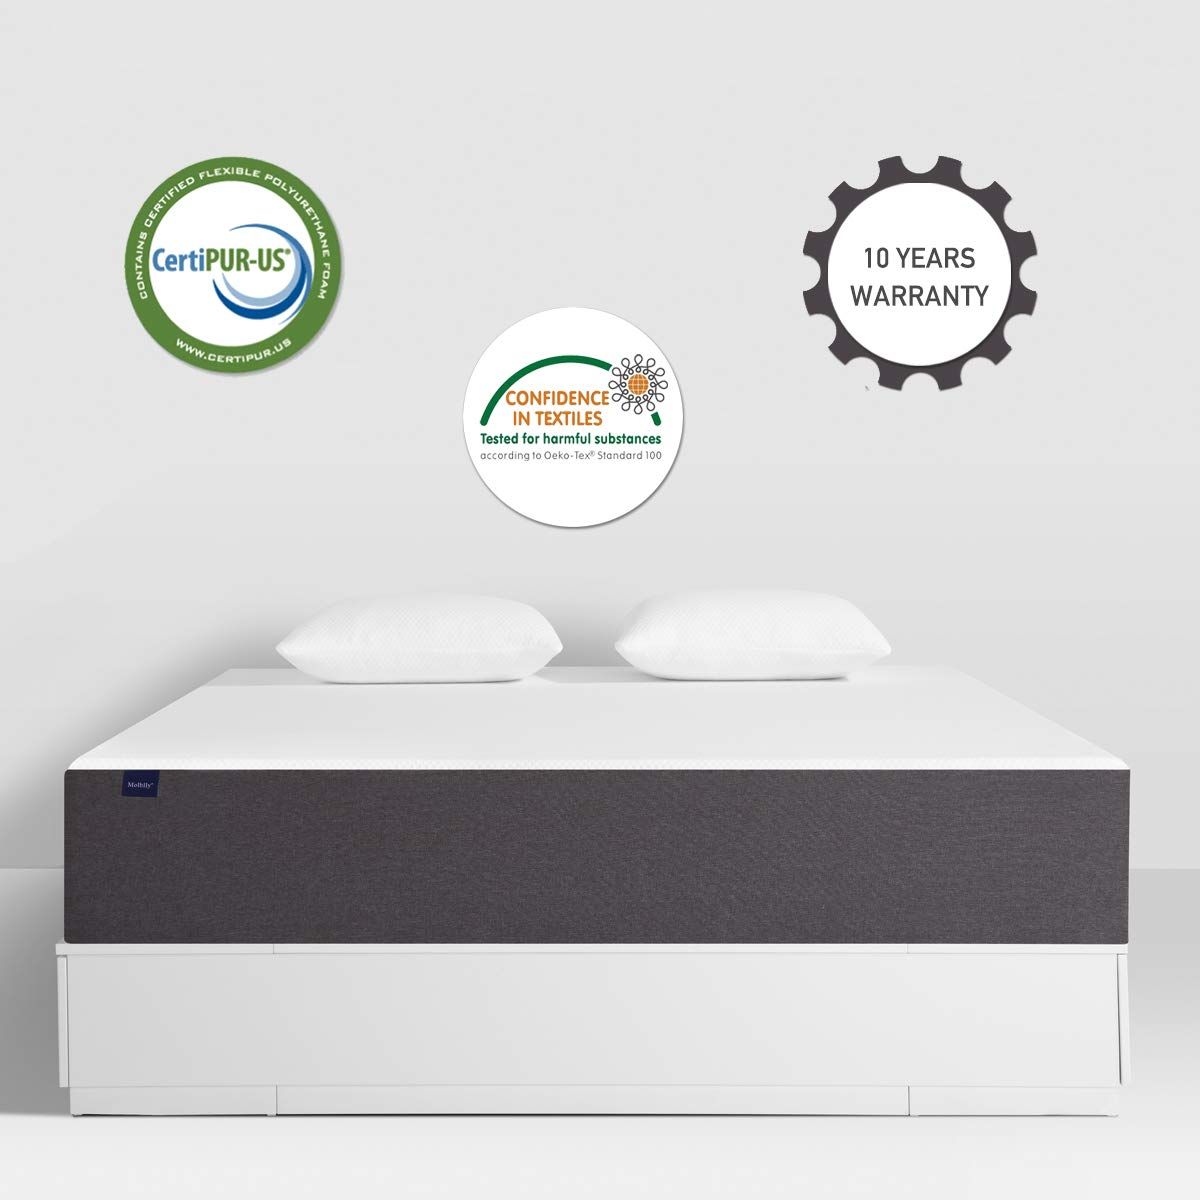 Amazon.com - Full Mattress, Molblly Premium 10 Inch Gel Memory Foam Mattress in a Box, Breathable Bed Mattress with CertiPUR-US Certified Foam for Sleep ...